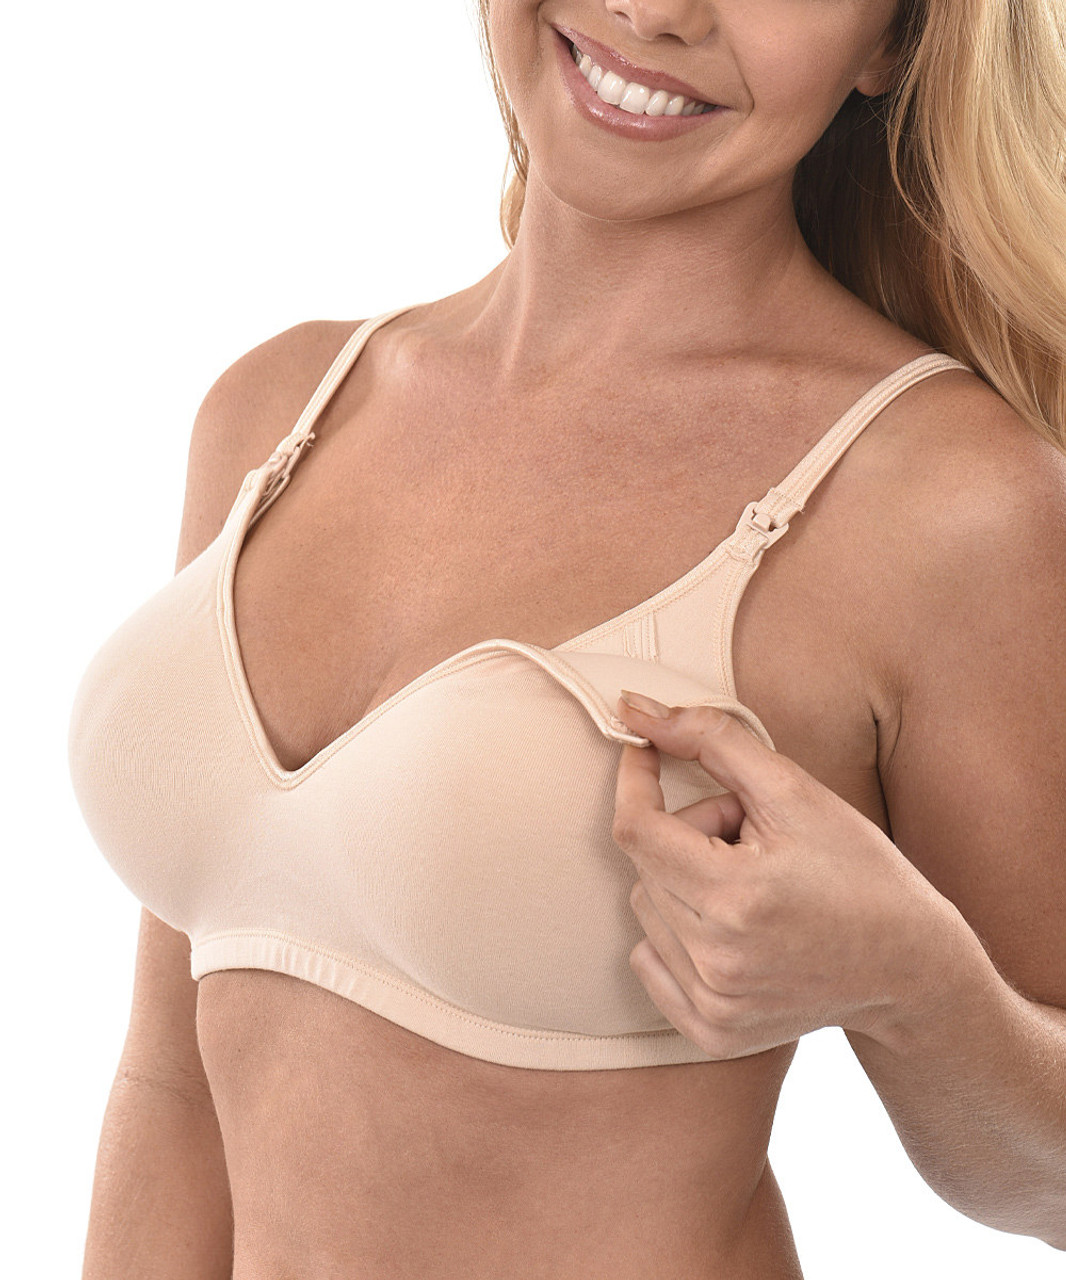 49173545bdd39 Dynabelly Molded Cup Nursing Bra